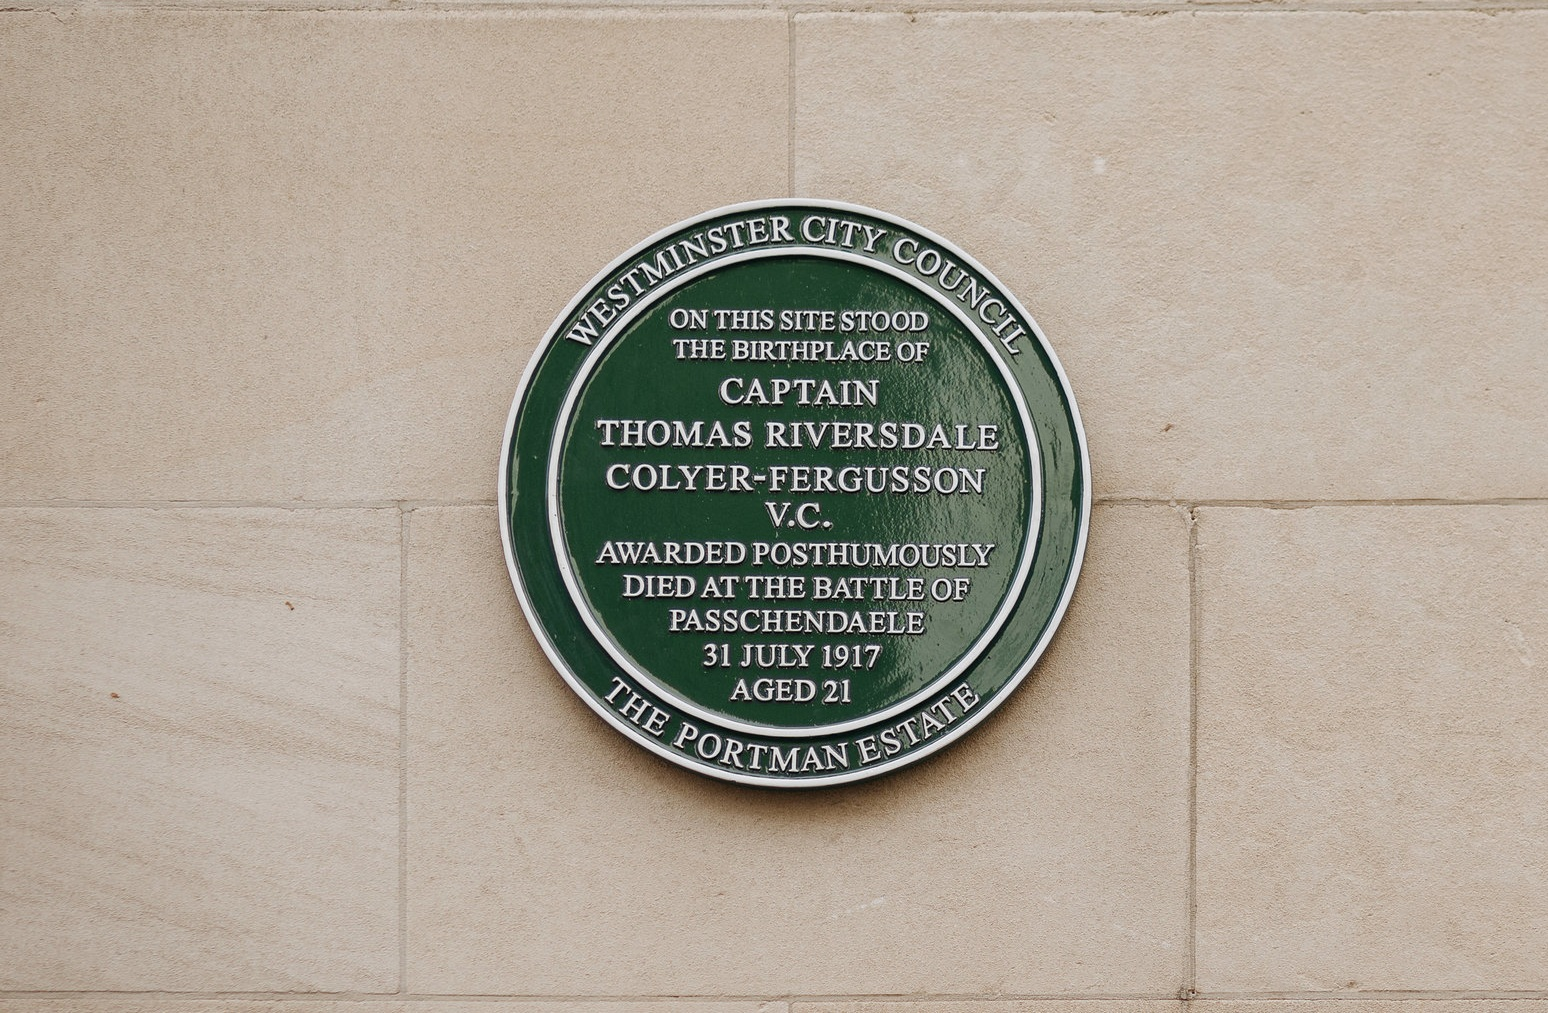 Green plaque to Captain Thomas Riversdale Colyer-Fergusson who was awarded the Victoria Cross after his death at Passchendaele in 1917.